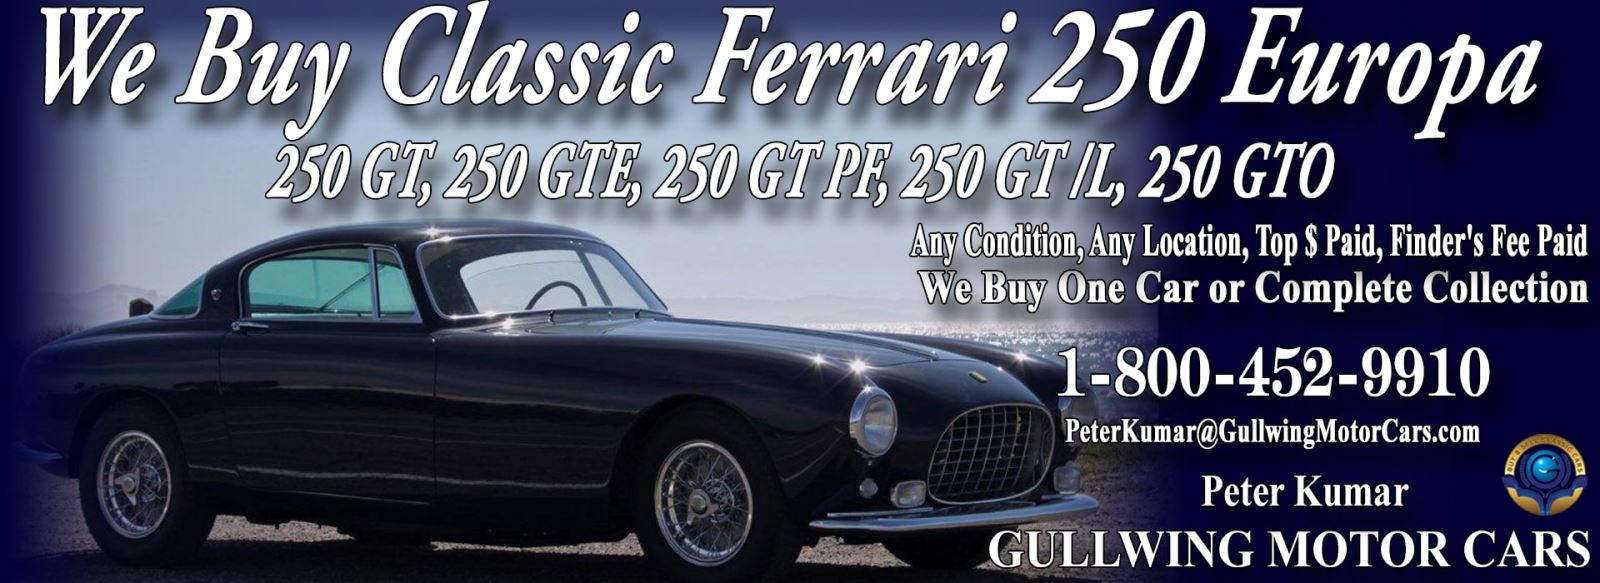 Classic Ferrari 250 Europa for sale, we buy vintage Ferrari 250 Europa. Call Peter Kumar. Gullwing Motor